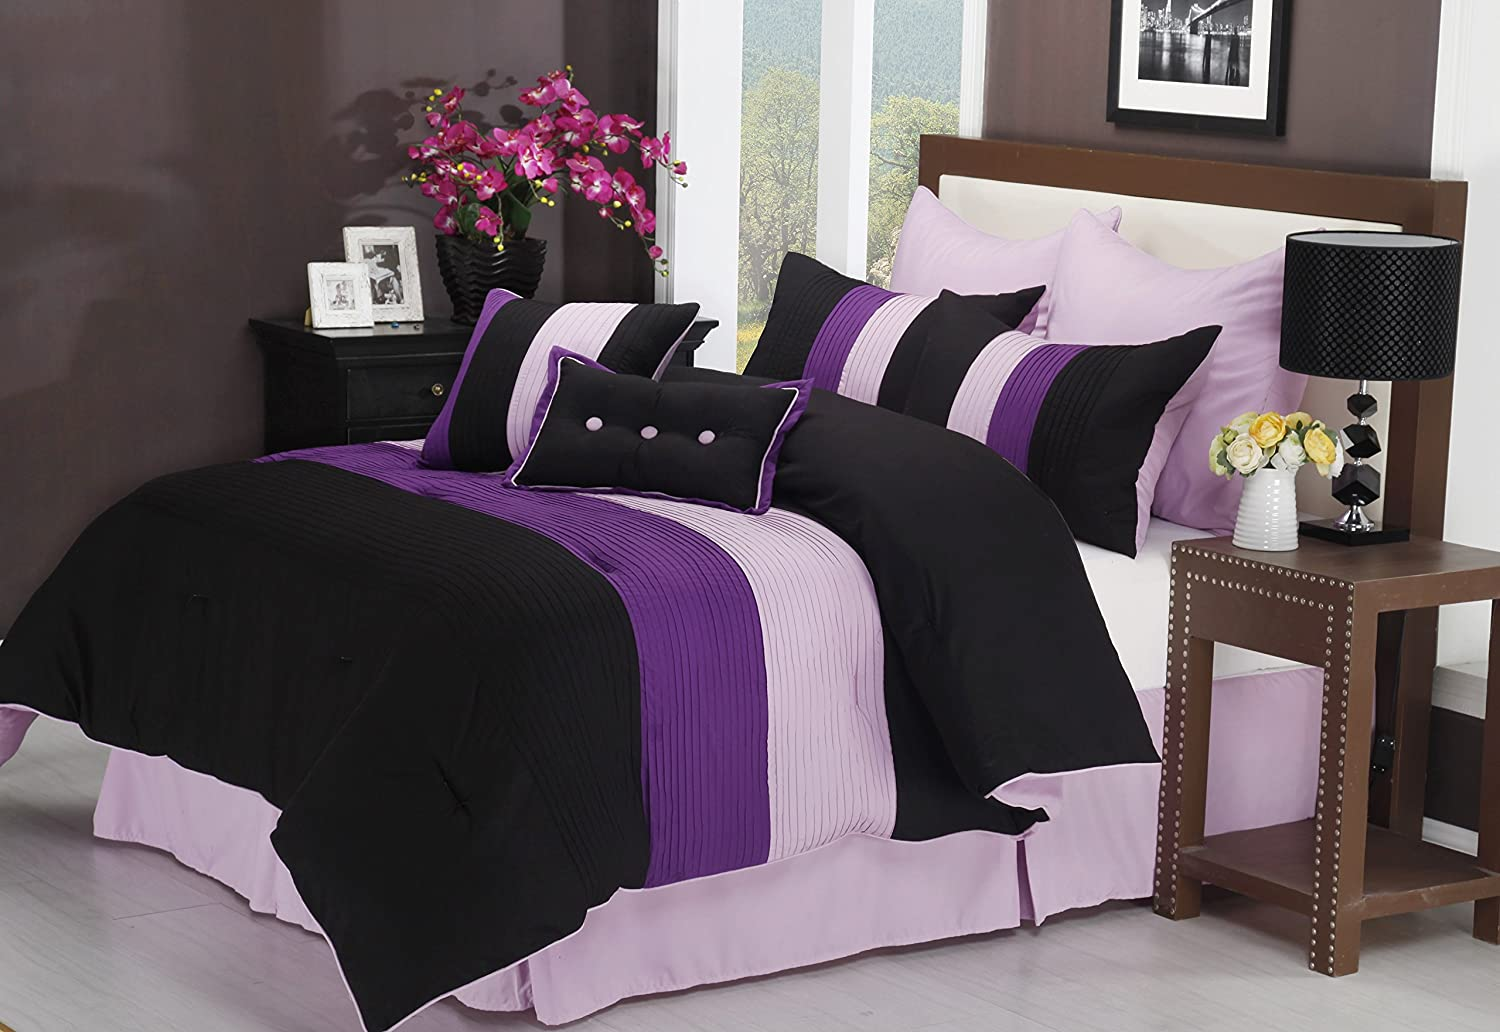 purple and black bedding sets ease bedding with style 20136 | 81g3voofr3l sl1500